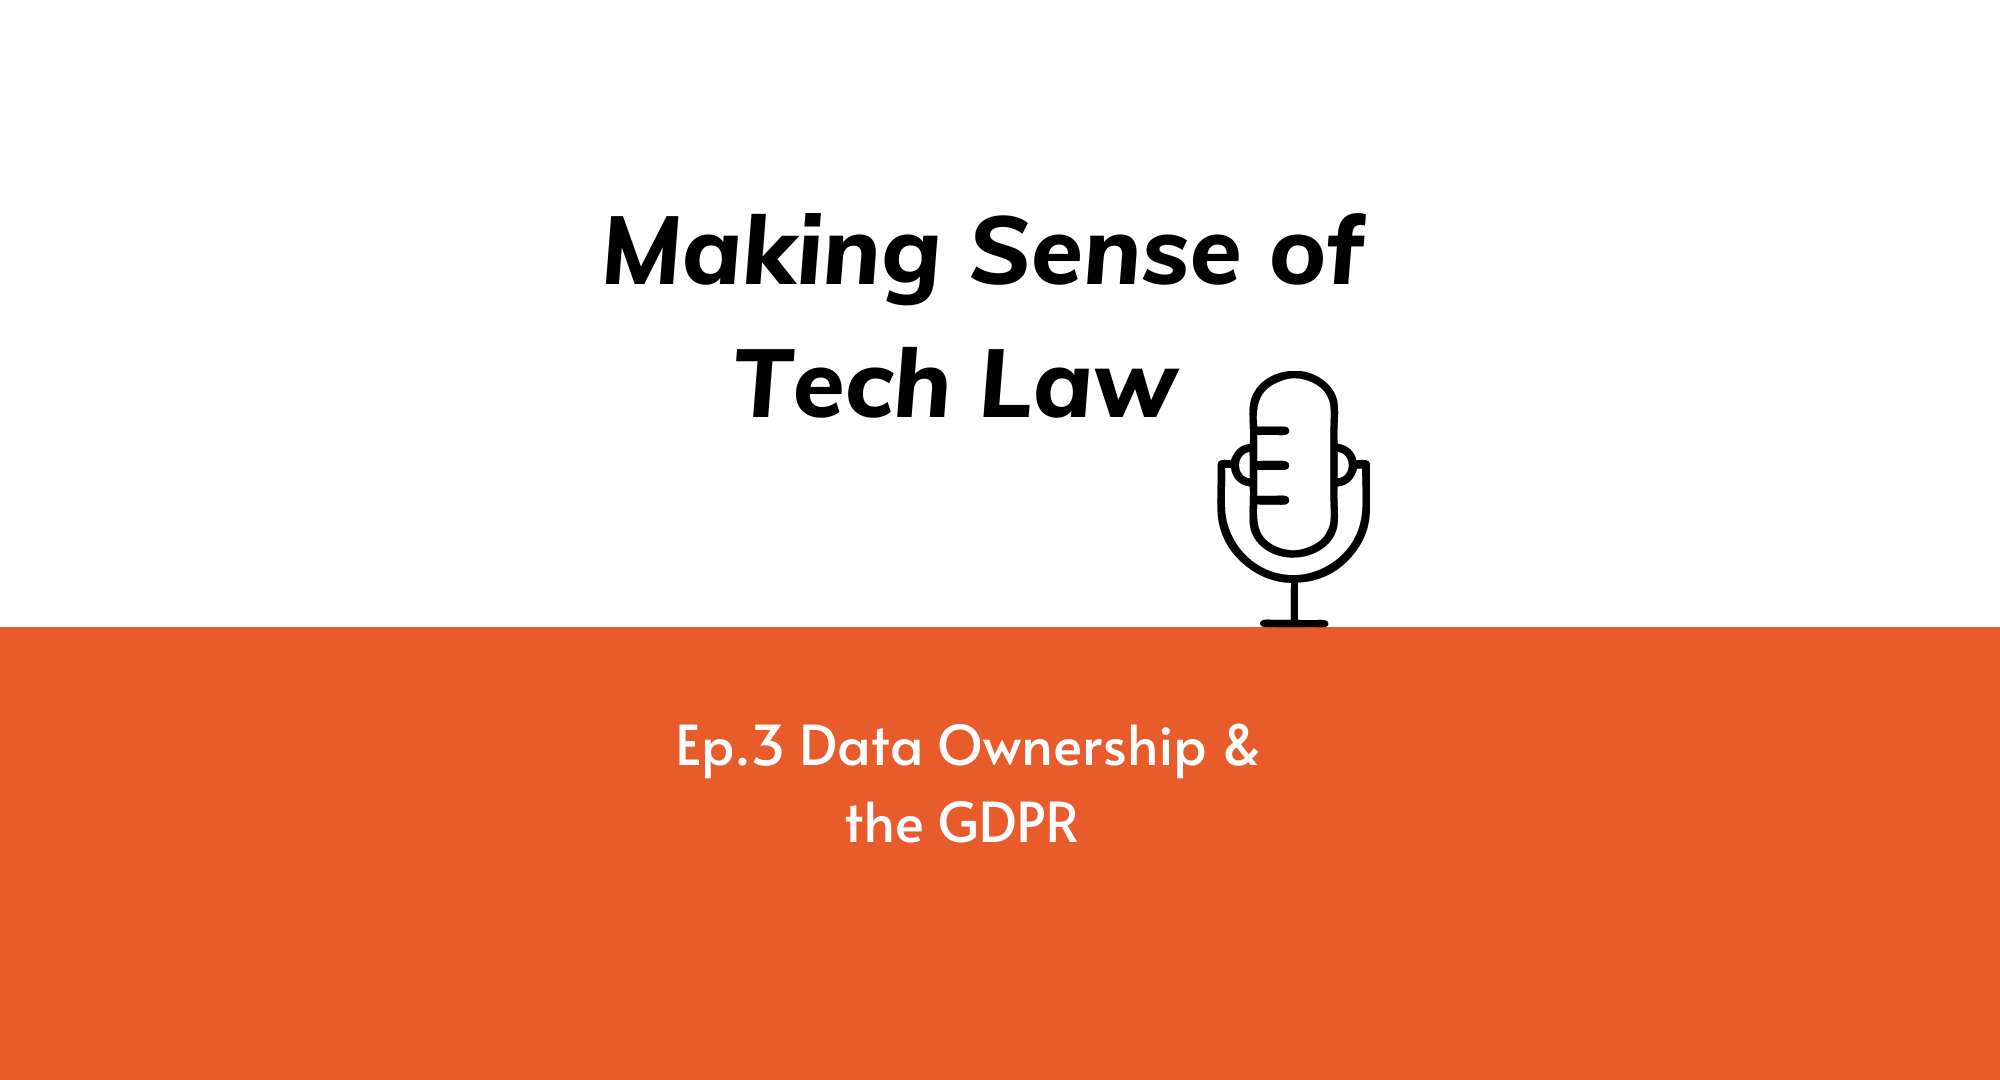 Making Sense of Tech Law Episode 3: Data Ownership & the GDPR